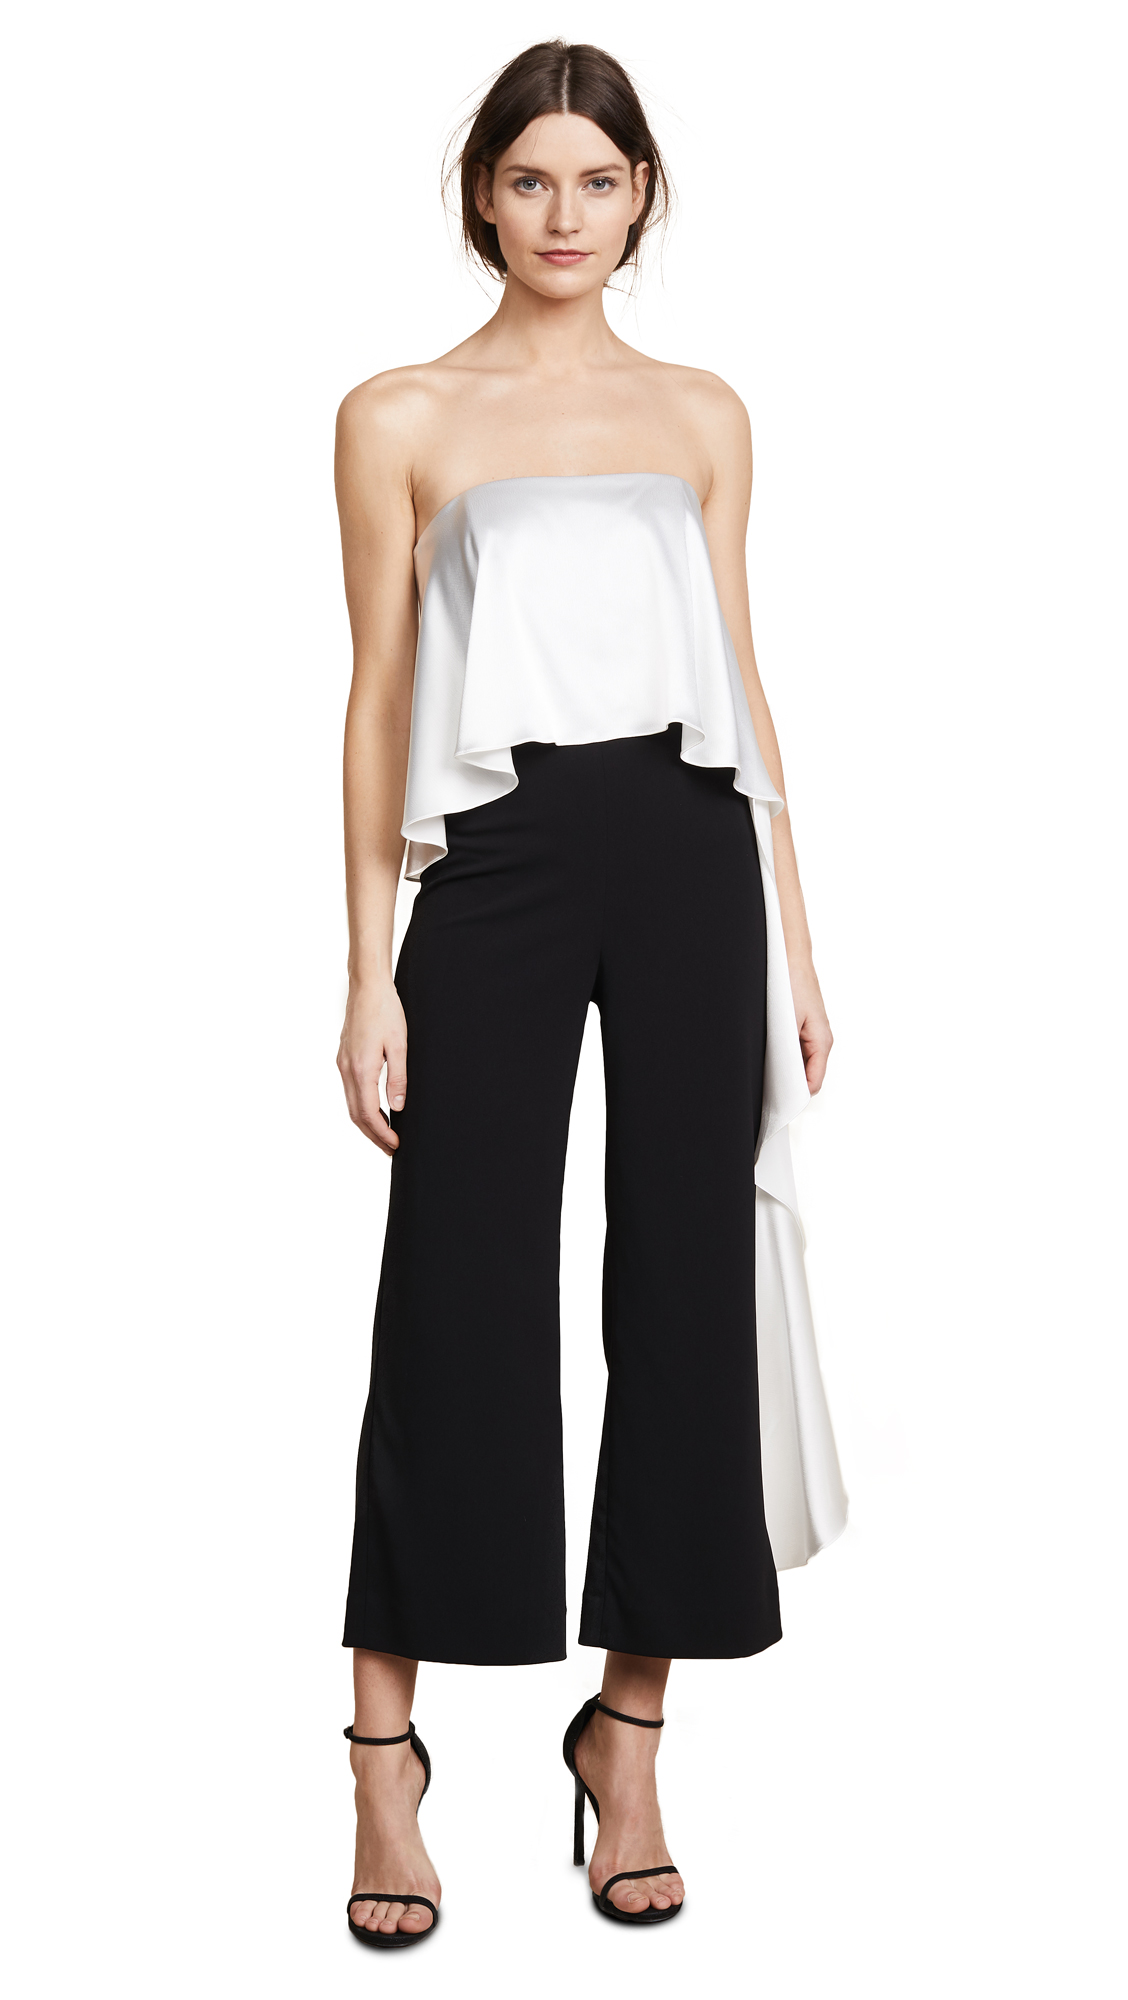 ONE BY JACQUELINE CROPPED RUFFLE JUMPSUIT